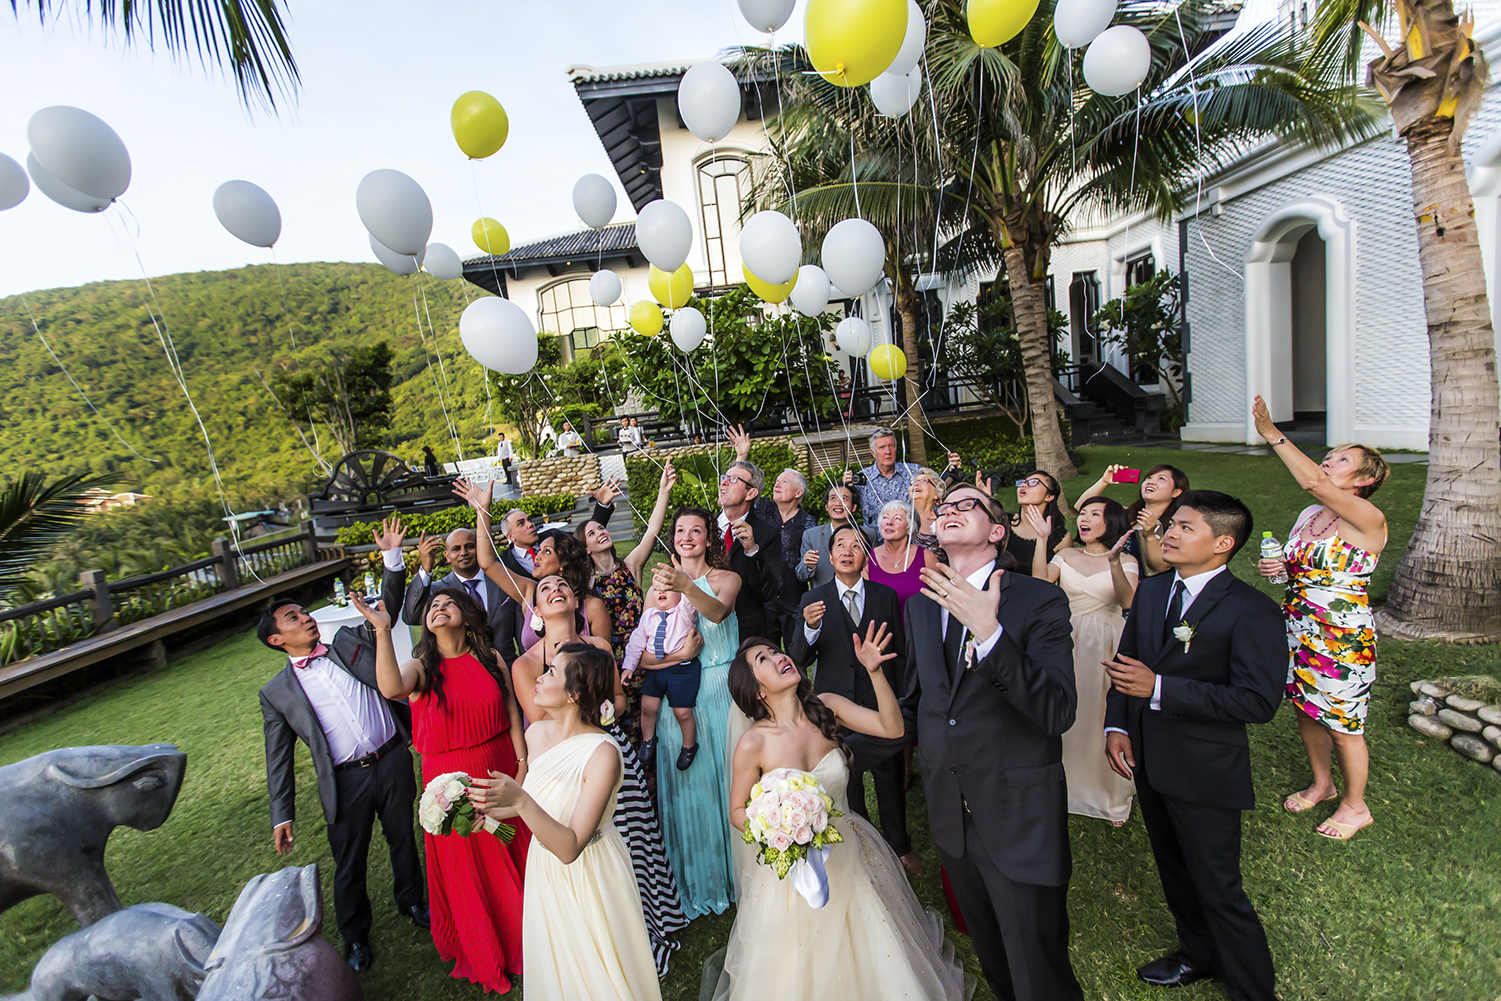 Chris-Trang-Wedding-Danang-Mott-Visuals-Christian-Berg_highres-97